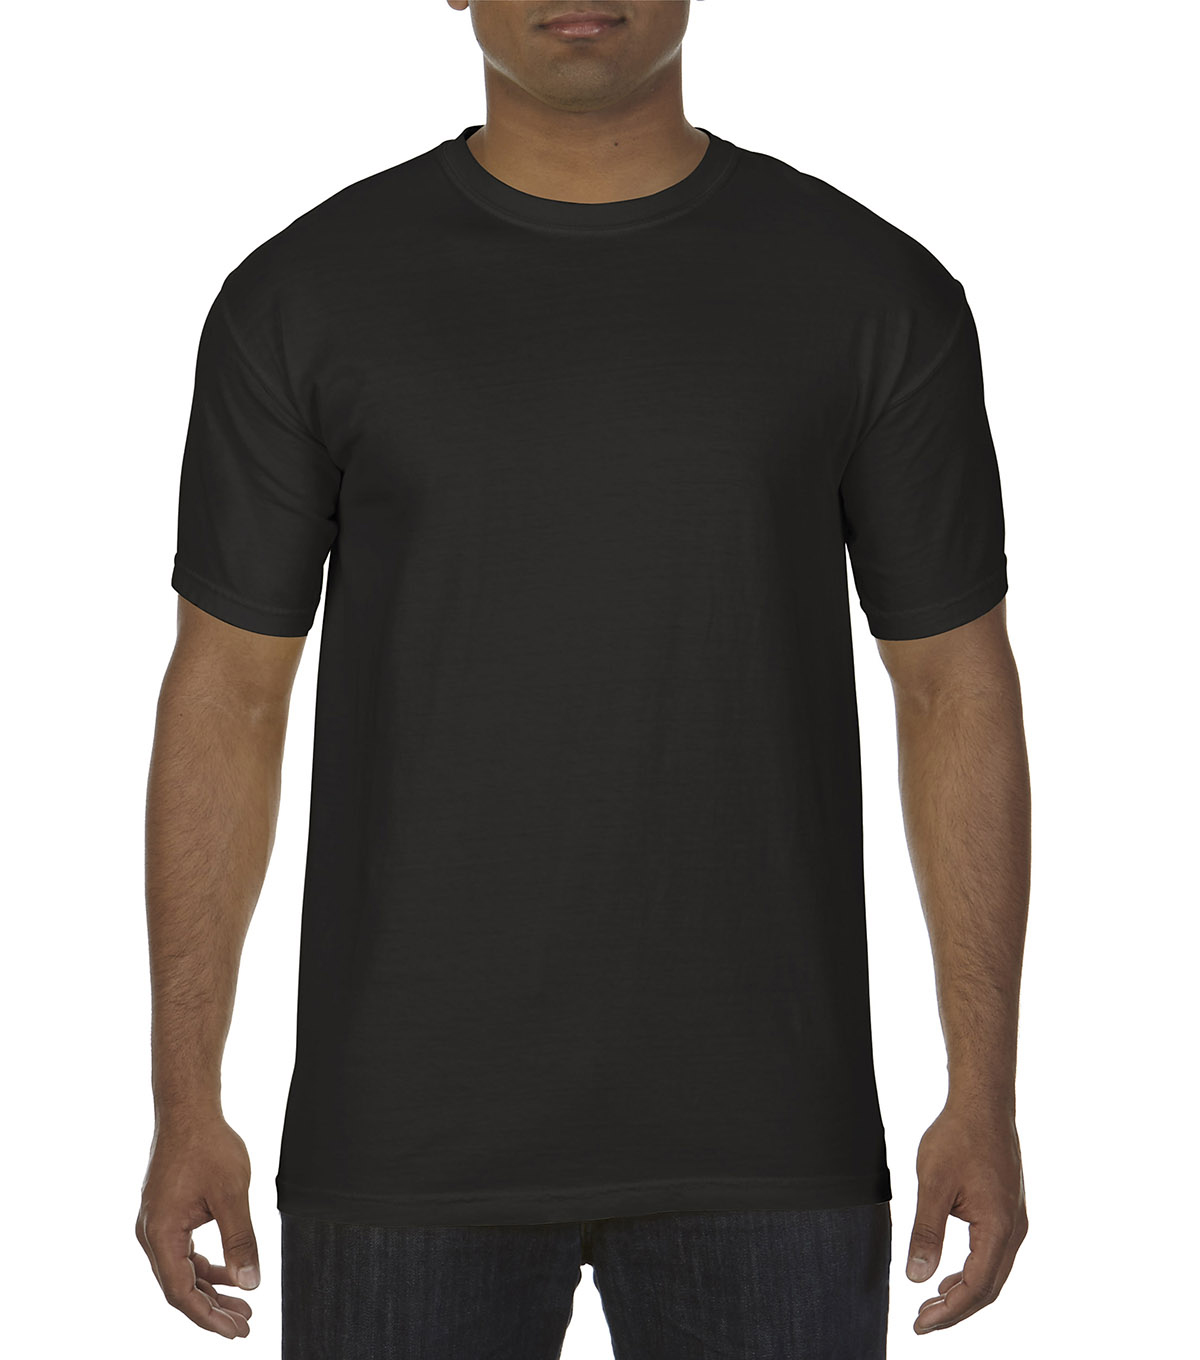 Adult Comfort Colors T-shirt-Medium, Black